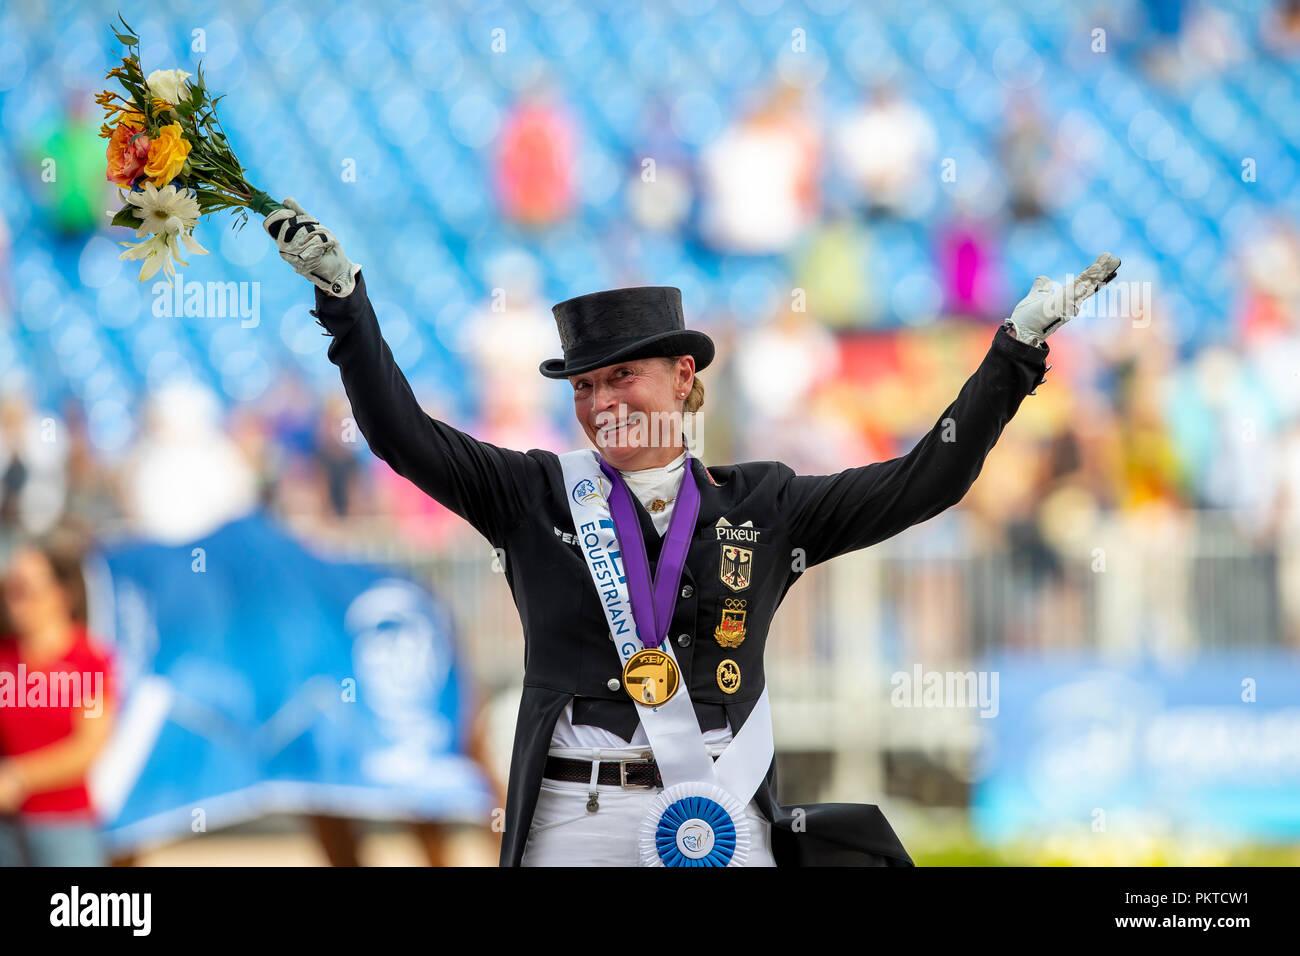 Tryon, USA. 14th Sep, 2018. Riding, FEI World Equestrian Game 2018, Grand Prix Special: Isabell Werth celebrates her victory on the podium. Credit: Stefan Lafrentz/dpa/Alamy Live News - Stock Image